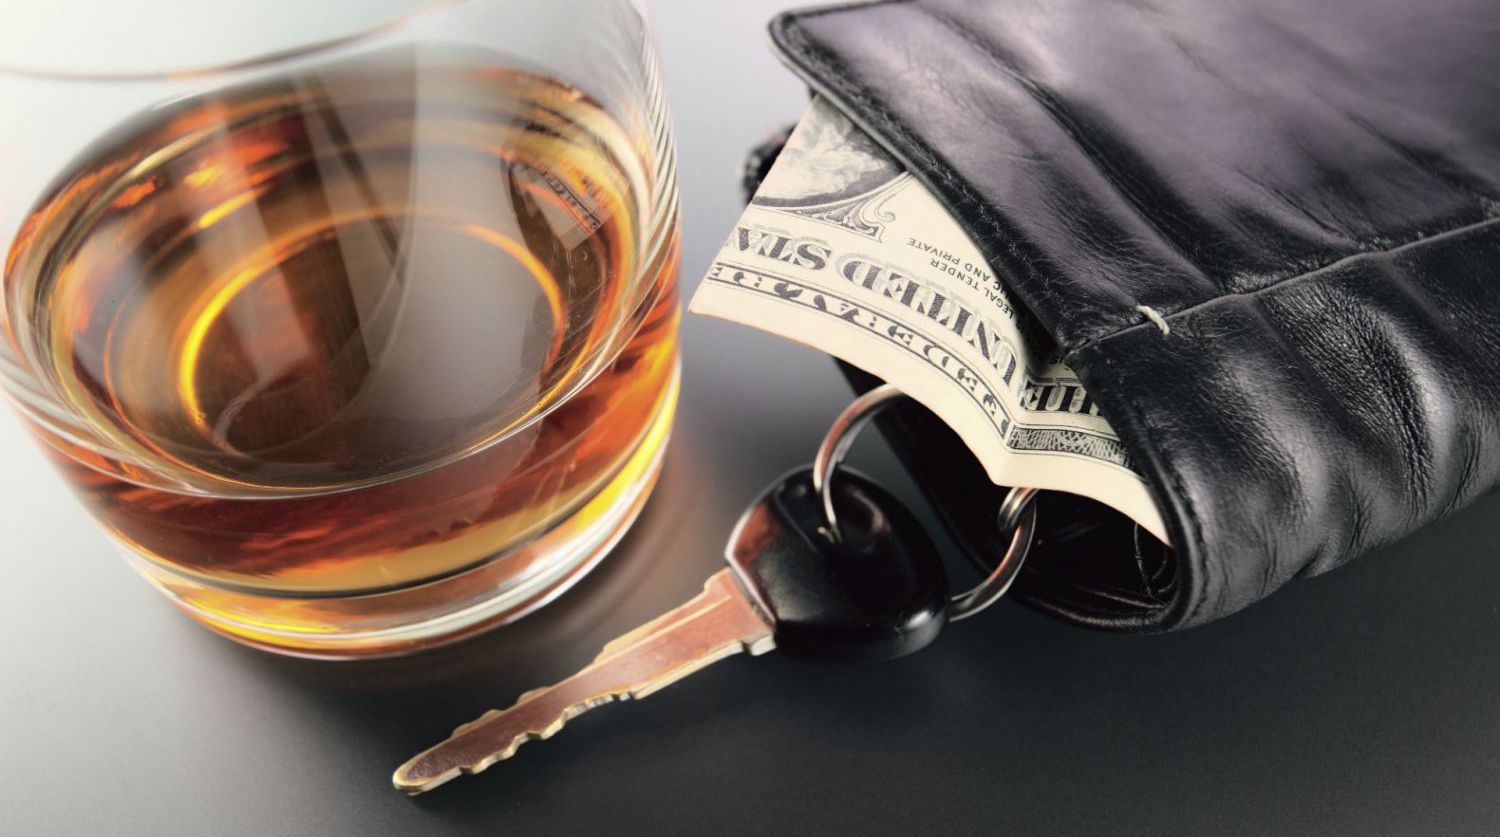 Criminal law attorney for DWI charges in Elkton, MD